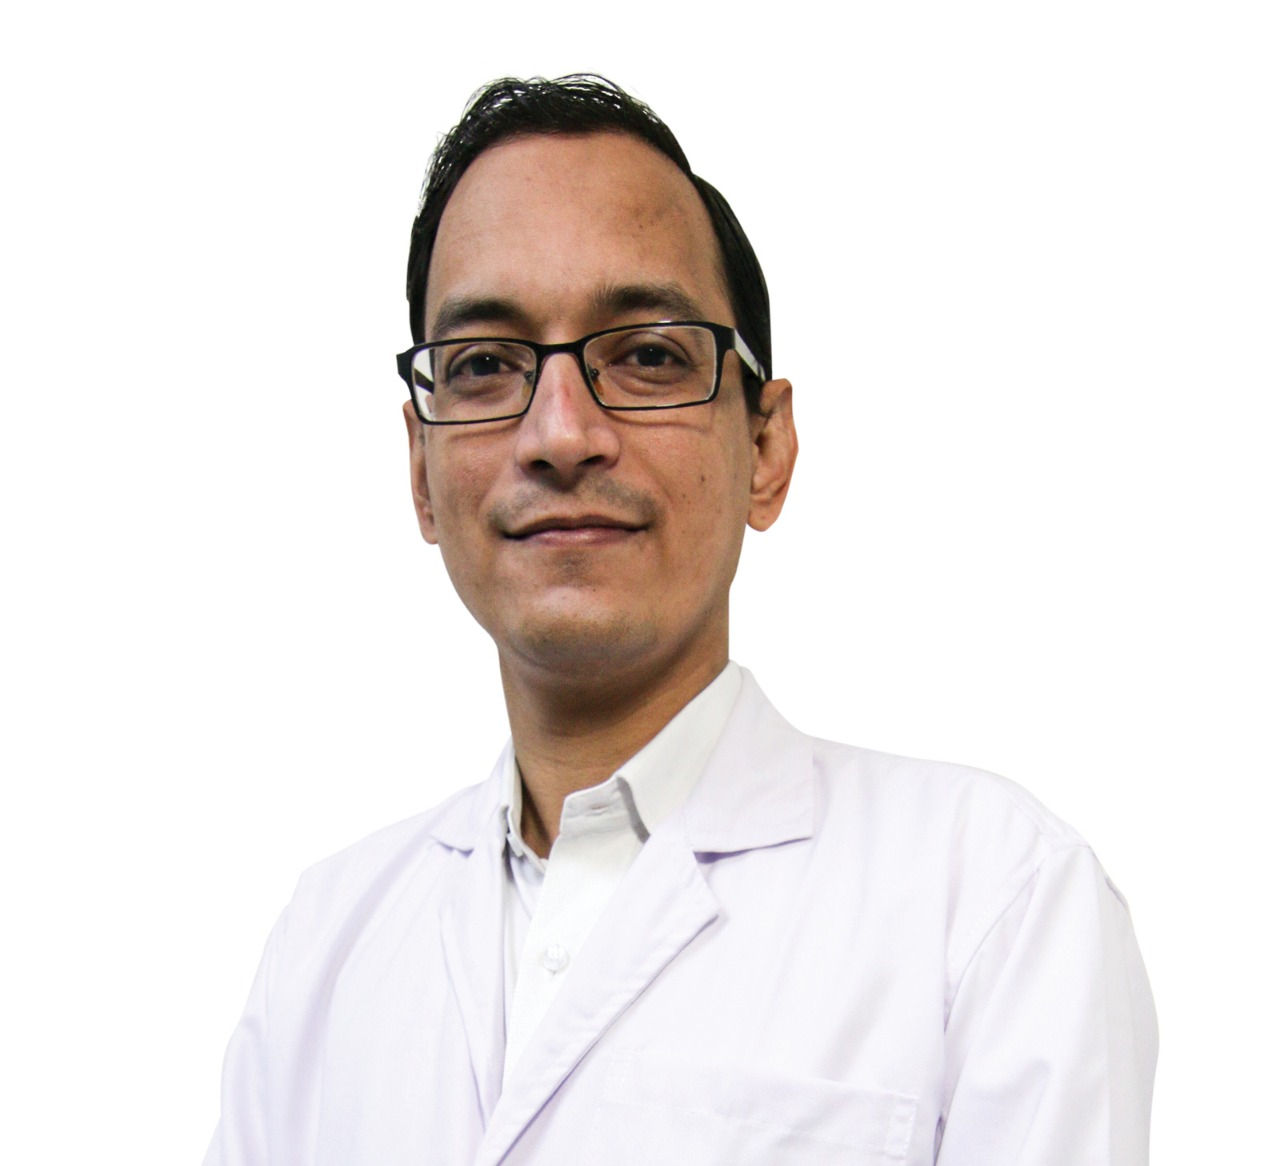 Dr Sachin Chaudhary | Top Consultant Cardiologist at Fortis Hospital Kalyan, Mumbai